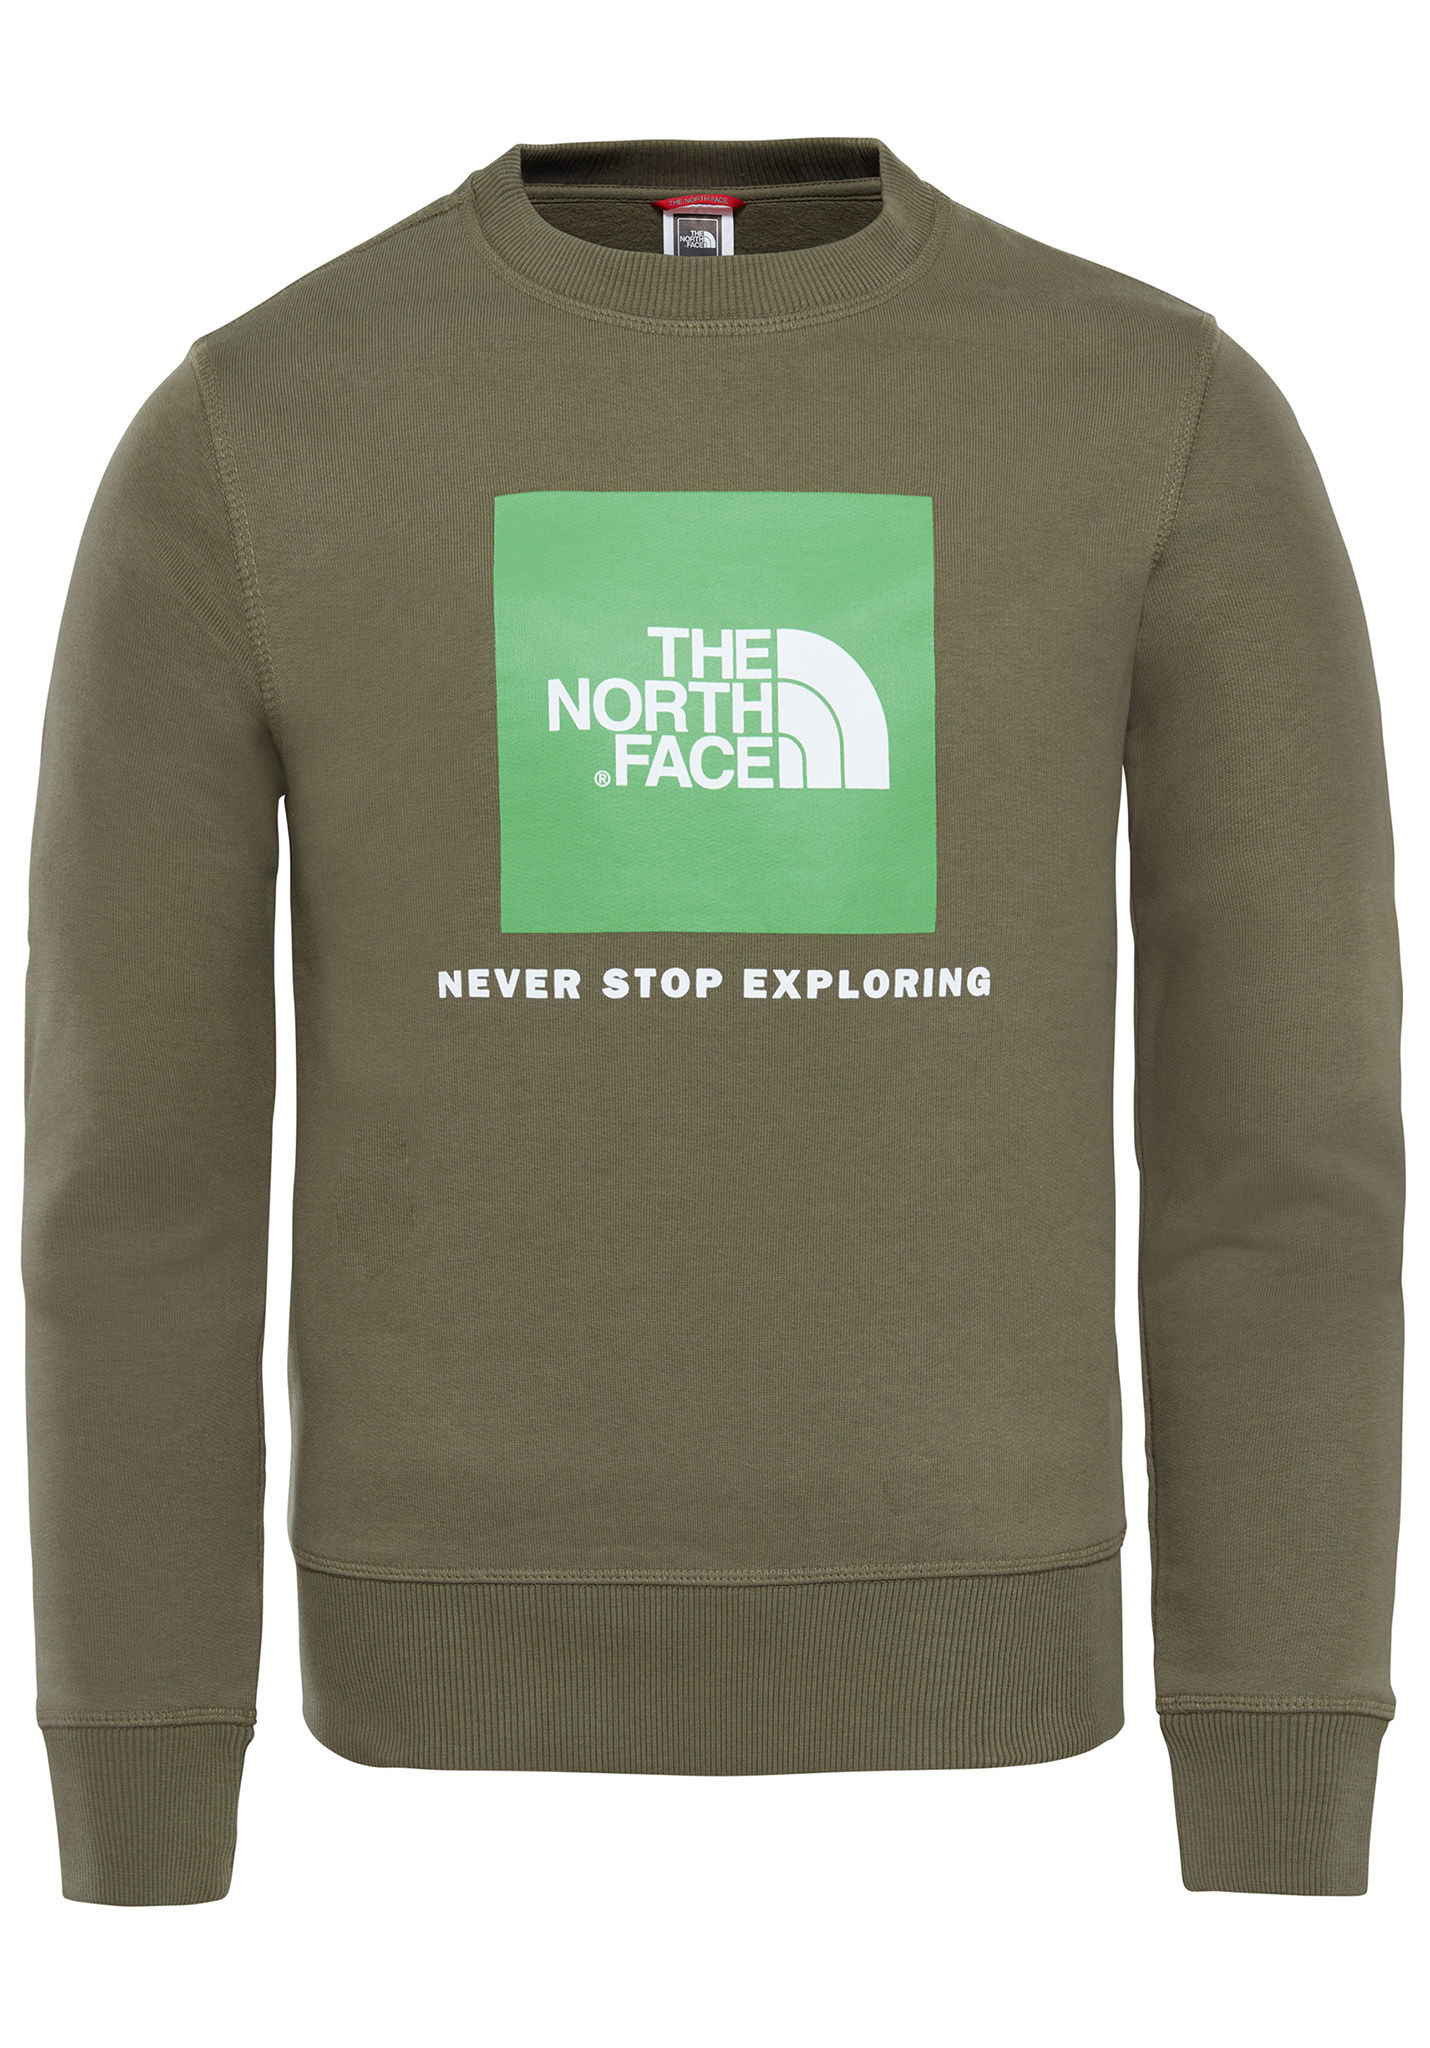 18412af4d THE NORTH FACE Box Crew - Sweatshirt - Green - Planet Sports